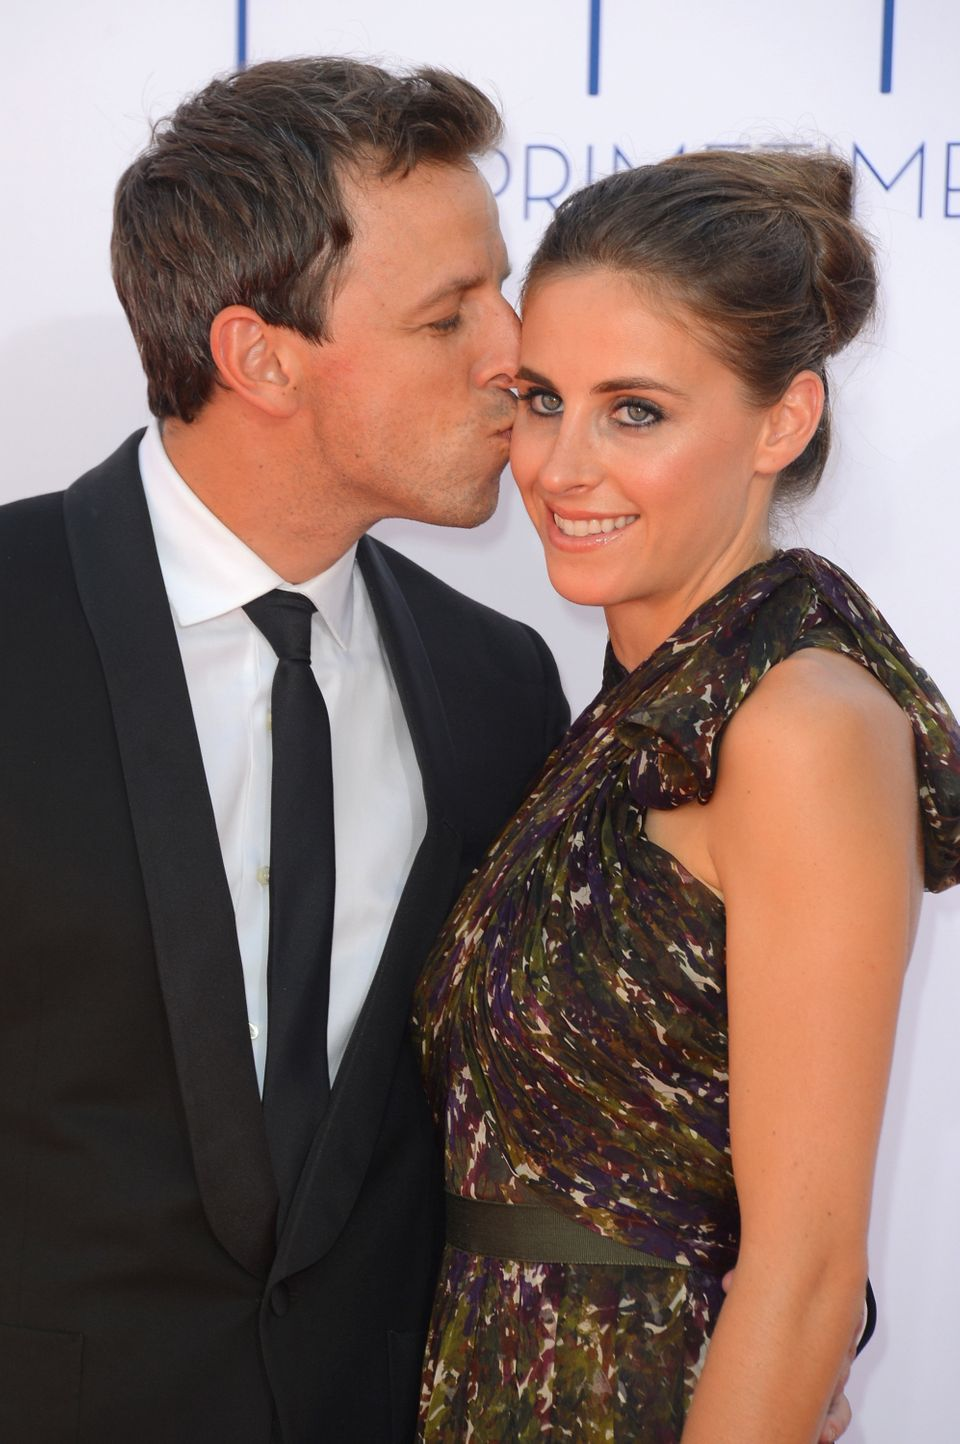 Seth Meyers became engaged to longtime lawyer girlfriend Alexi Ashe in New York City, in July 2013.